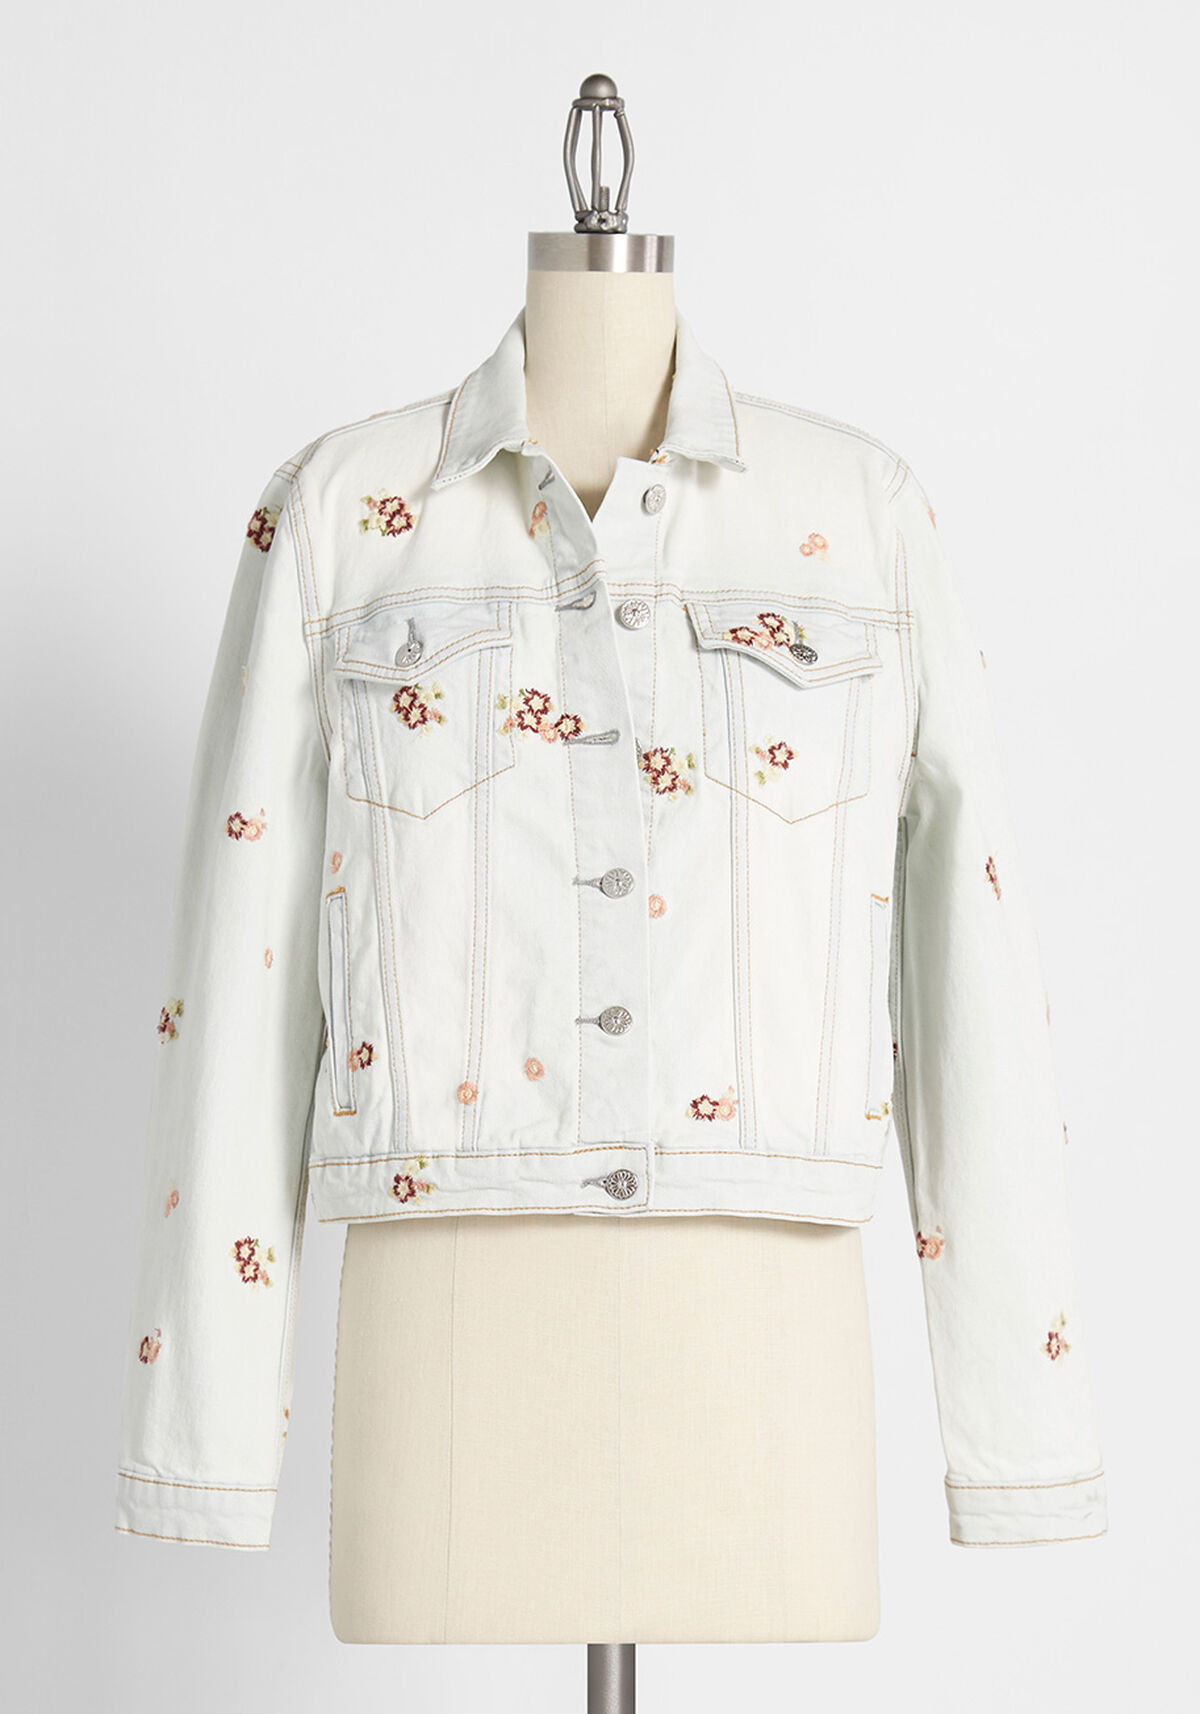 The jacket with a very light-wash style with buttons, two front pockets, and subtle rose embroideries throughout